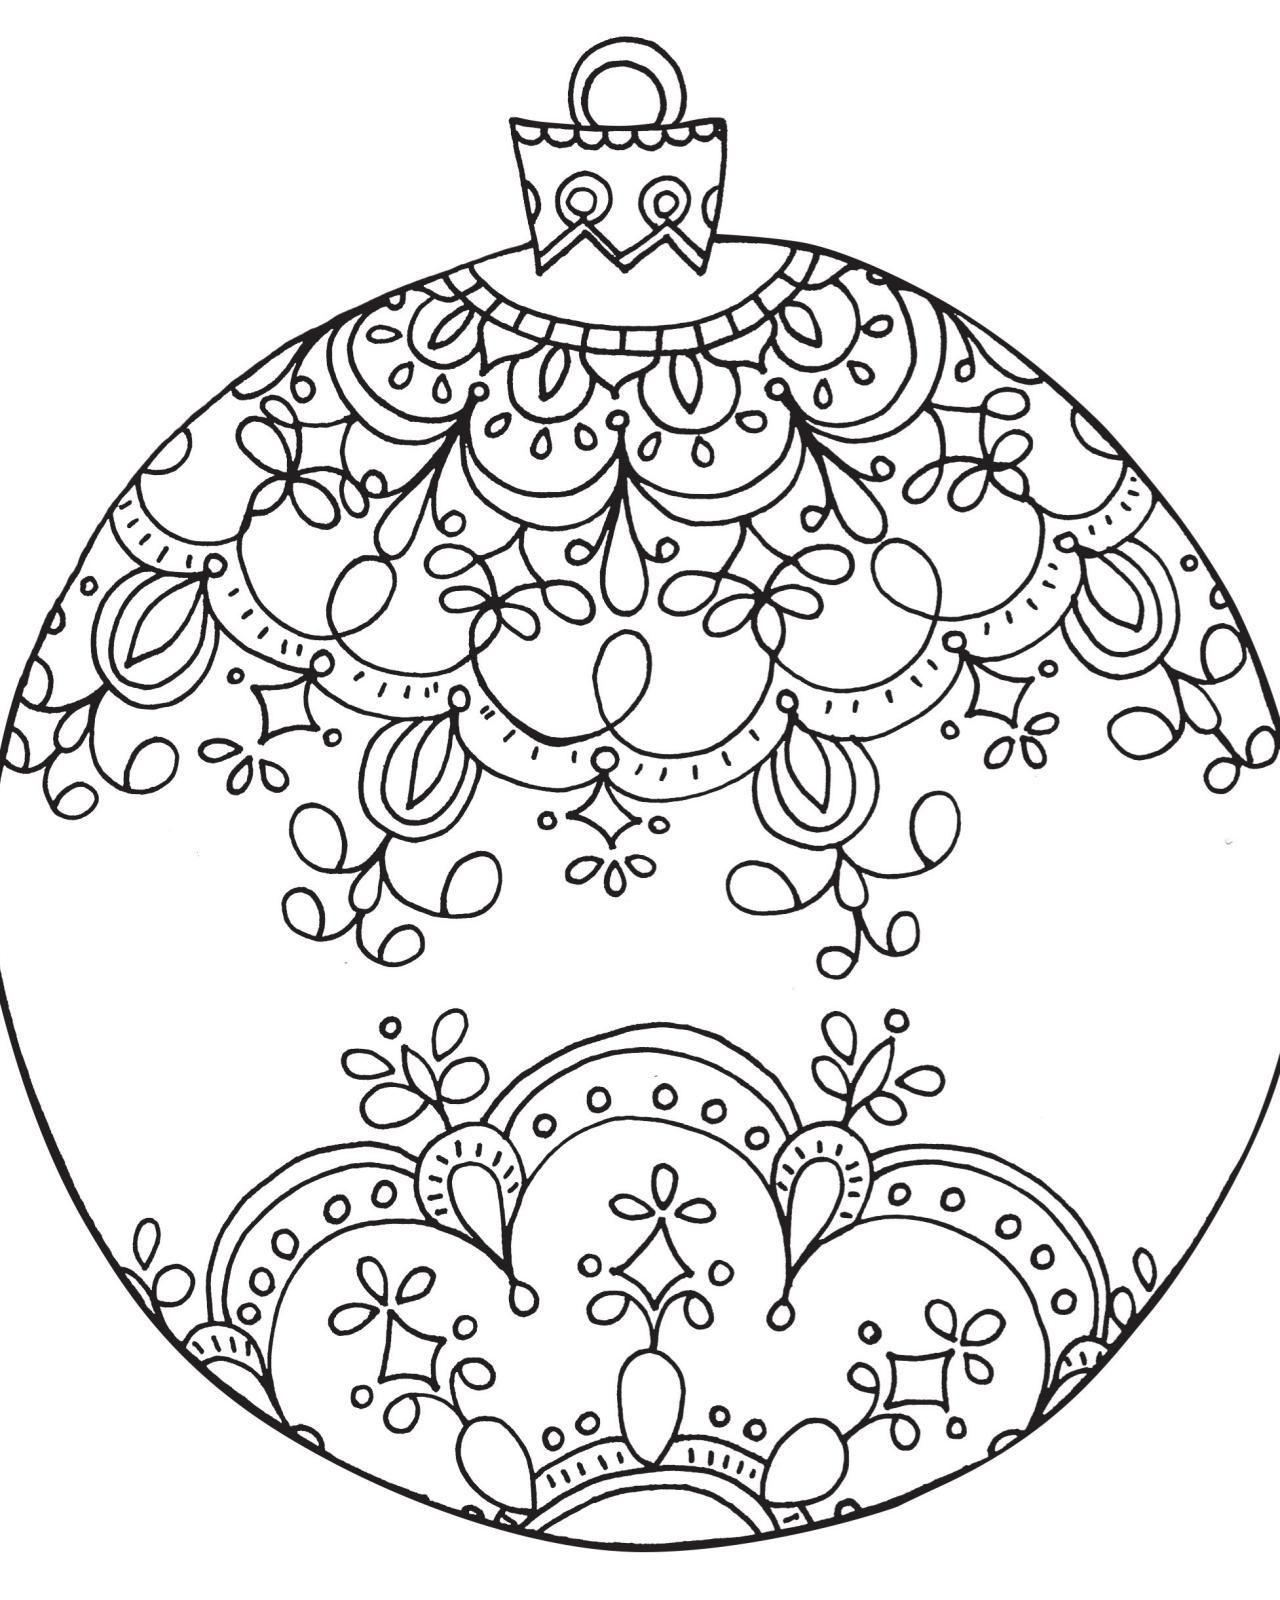 Merry Christmas Coloring Pages Coloring Pages Printable